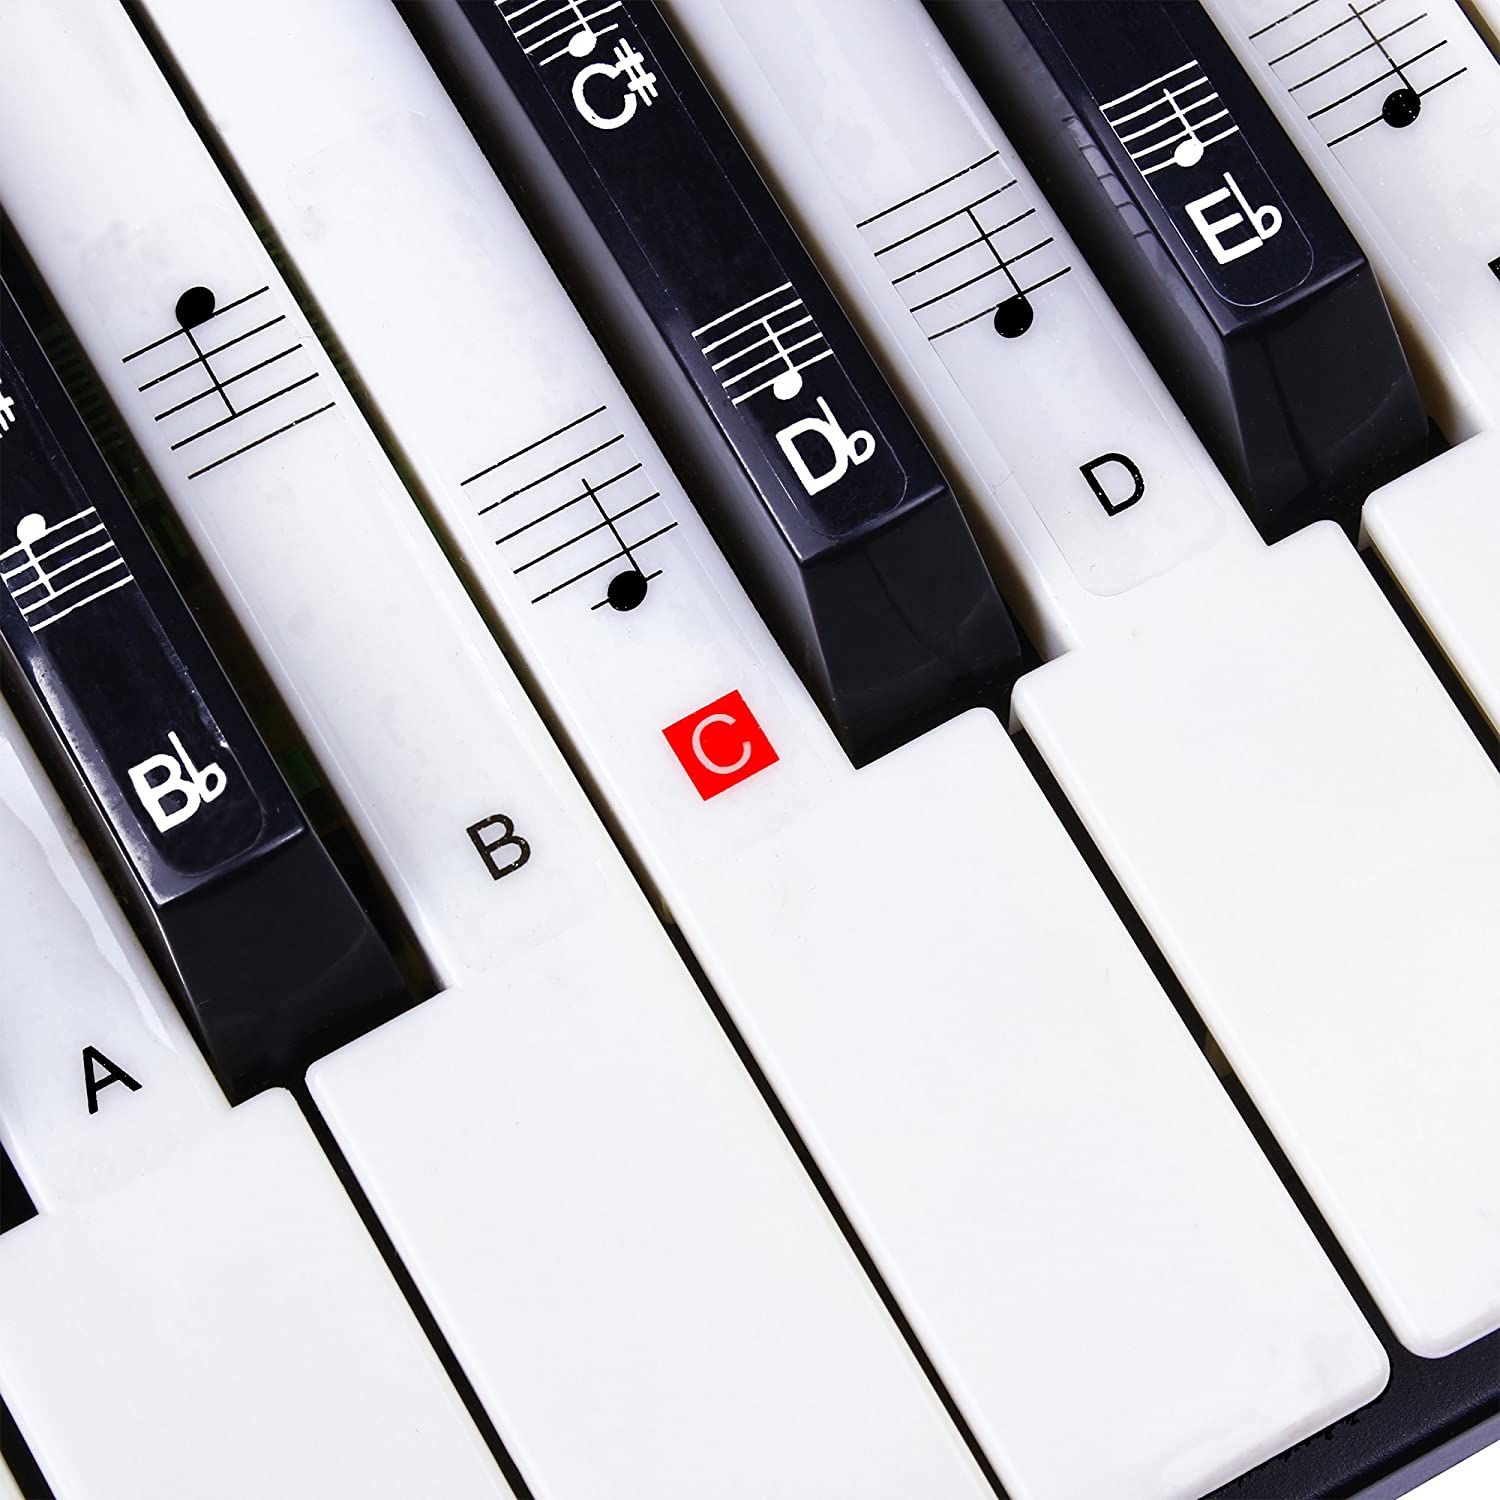 Stickers for Piano, Keyboard Music Note Full Set Stickers for White & Black Keys with Piano User Guide, Transparent and Safe, Gift for Easily Learning Piano Lessons Belonger 4334366107